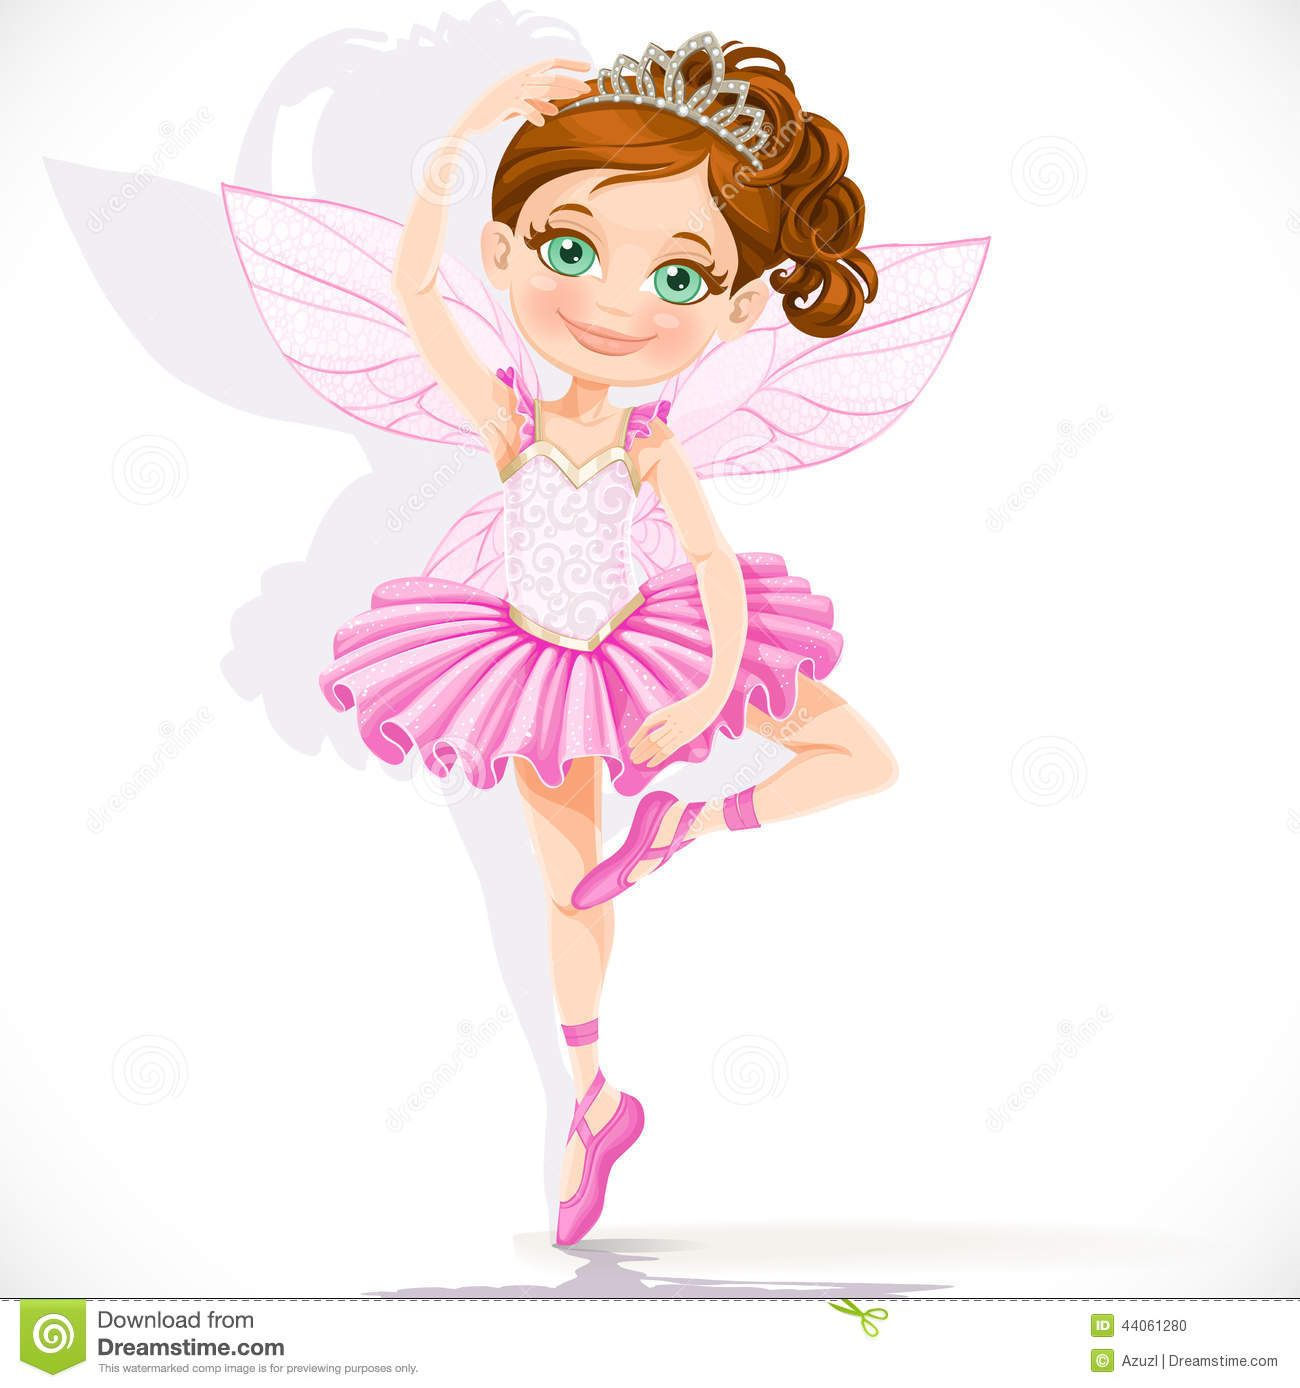 Angels dancing clipart clip art royalty free library Girls Angels clipart   Cute Little Fairy Girl In Pink Tutu And Tiara ... clip art royalty free library